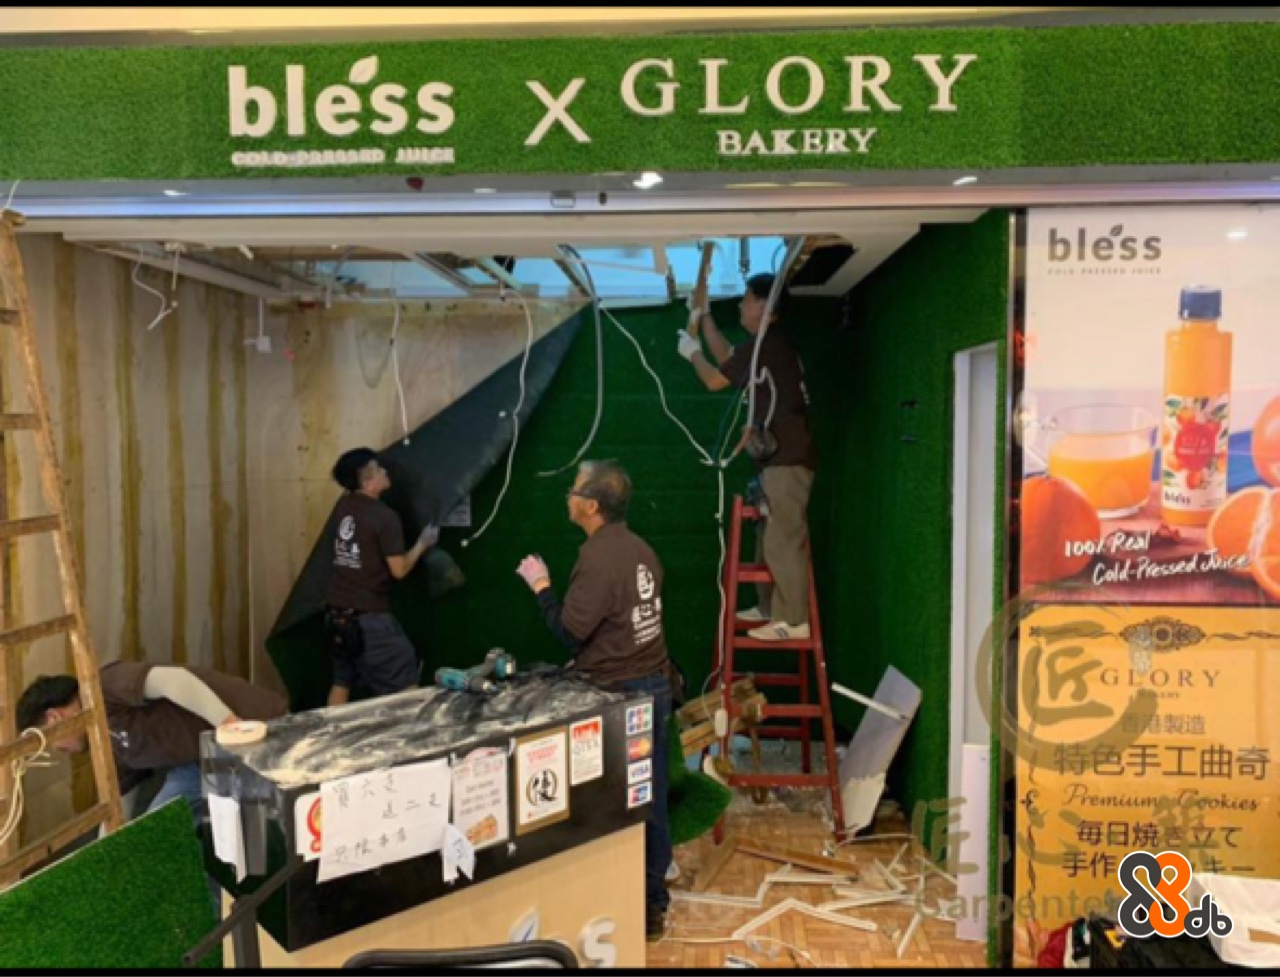 bless x GLORY BAKERY COLD PRRRD JUICE bless 100 Real Cold-Pressed chice GLORY 特色手工曲奇 Premium Cookies 手作( arpenter  Banner,